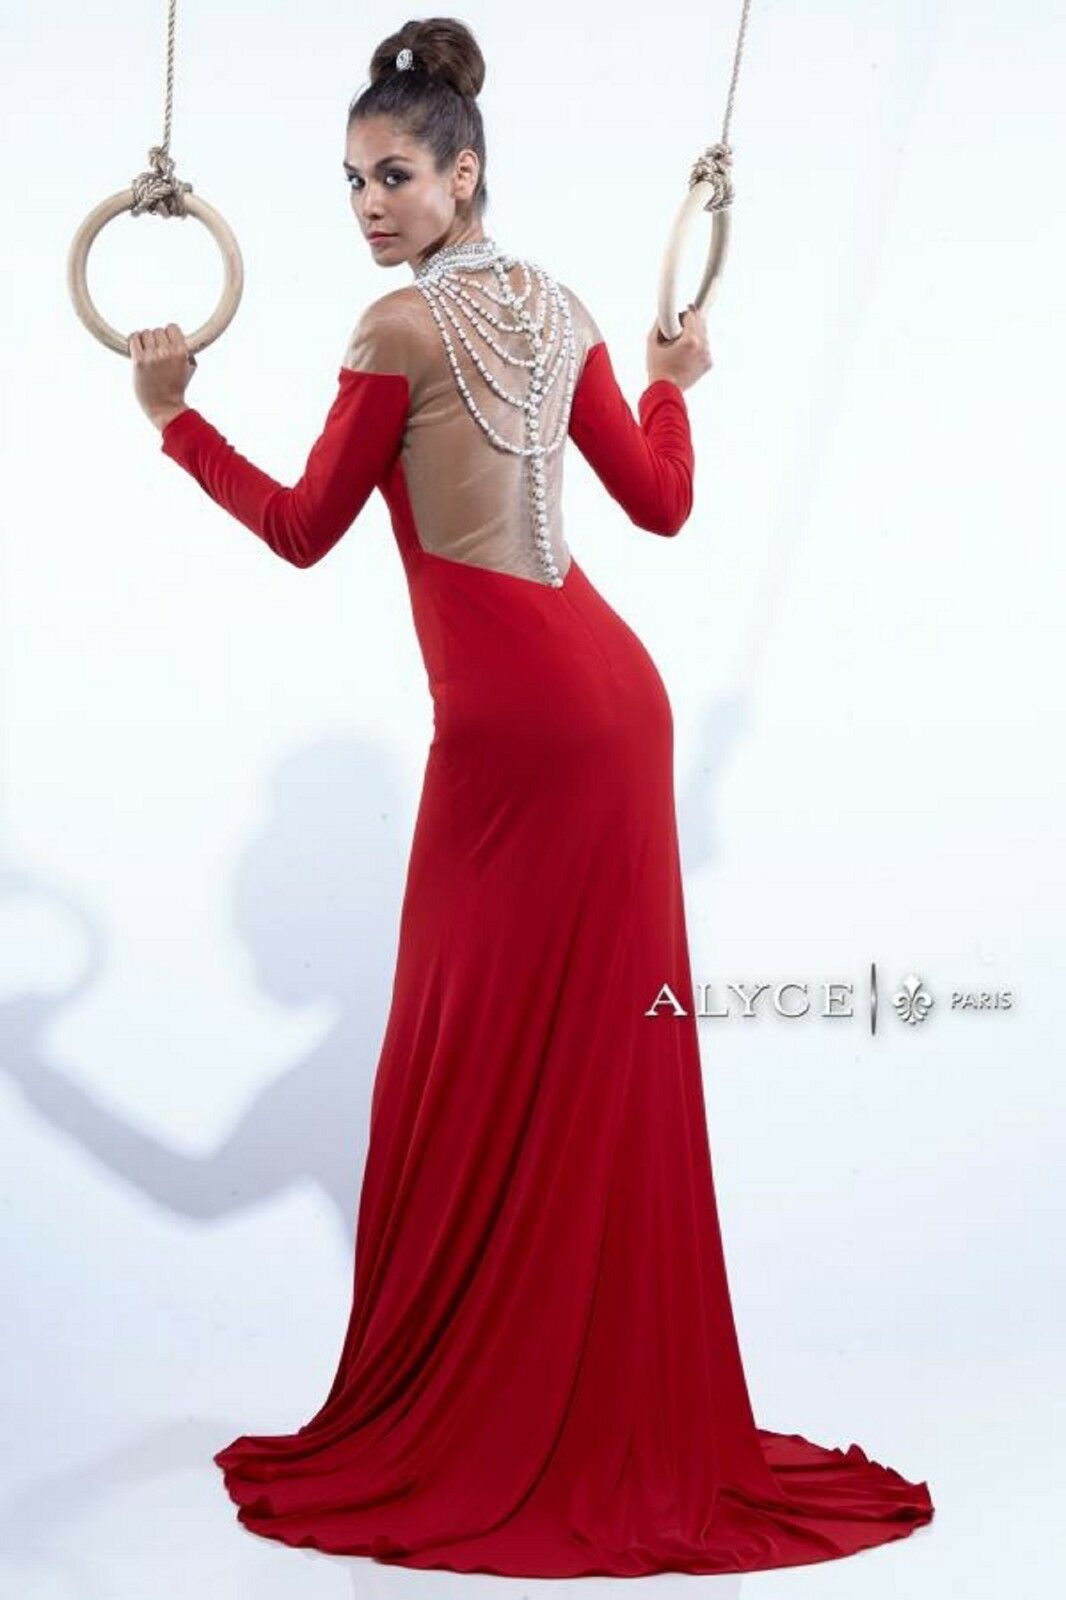 NWT Size 6 RED jersey long sleeved jeweled formal PROM evening gown, Alyce 2411